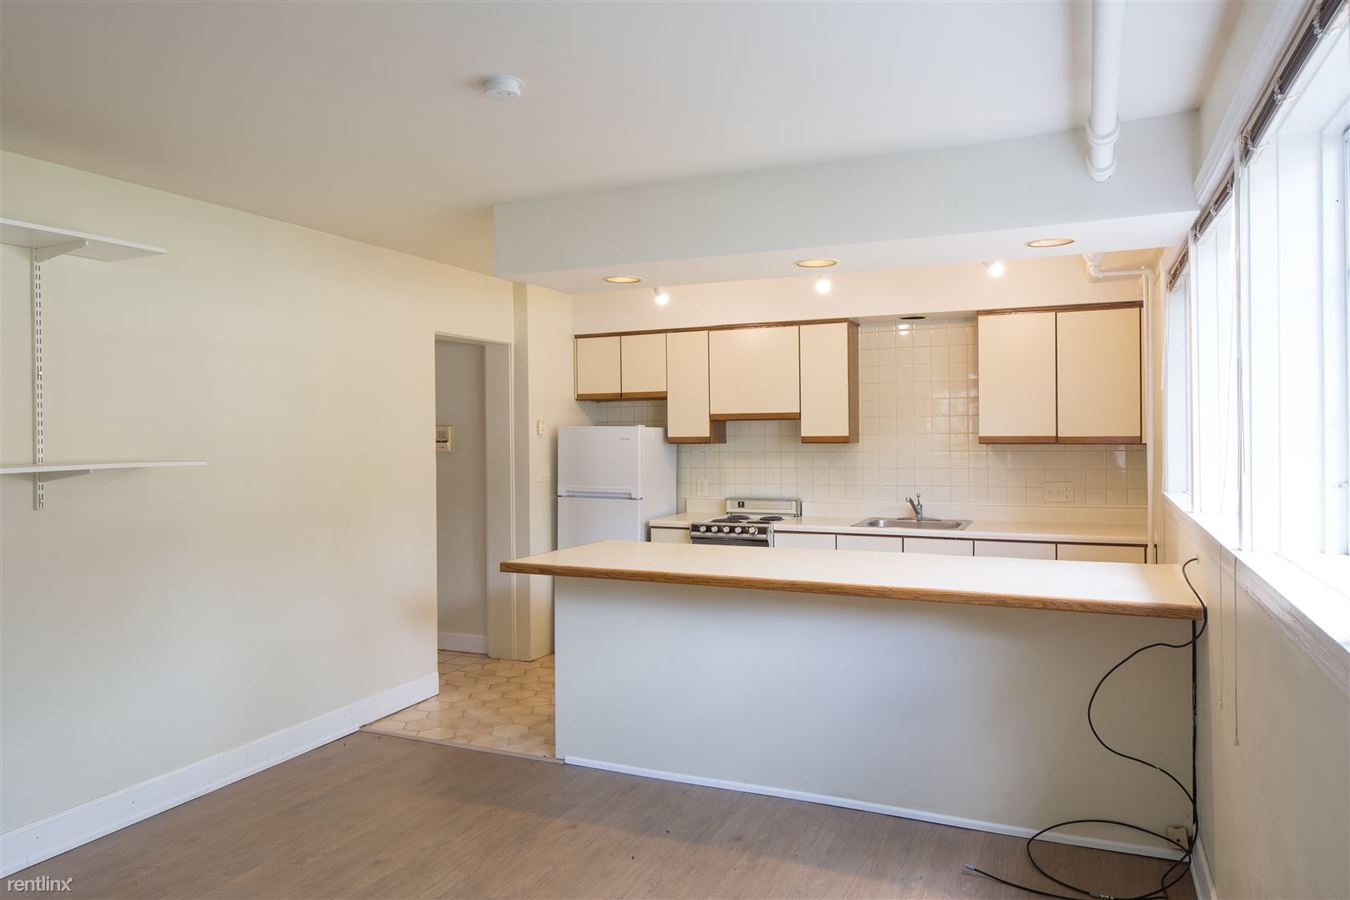 1 Bedroom 1 Bathroom Apartment for rent at 714 Henry St in Ann Arbor, MI